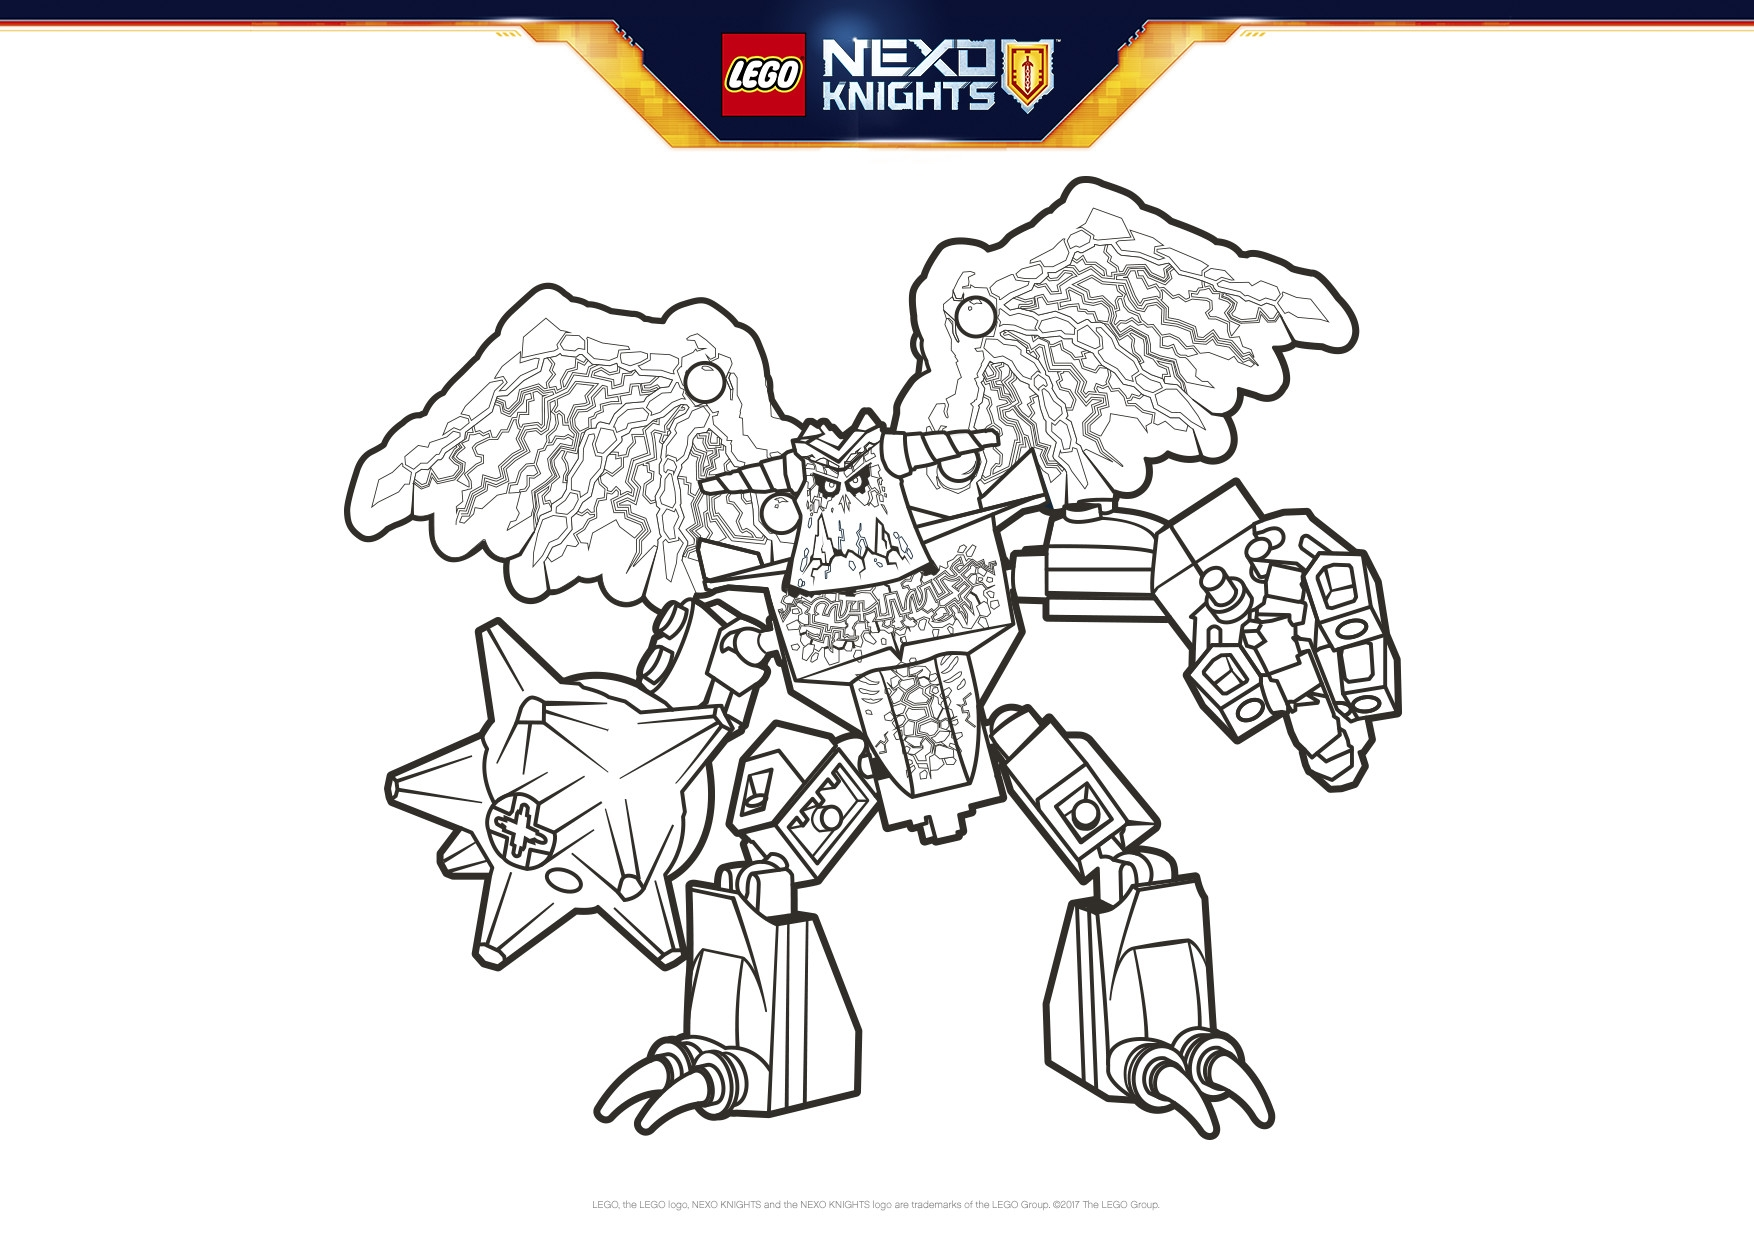 Ausmalbilder Nexo Knights Sparks : 28 Lego Nexo Knights Coloring Pages Compilation Free Coloring